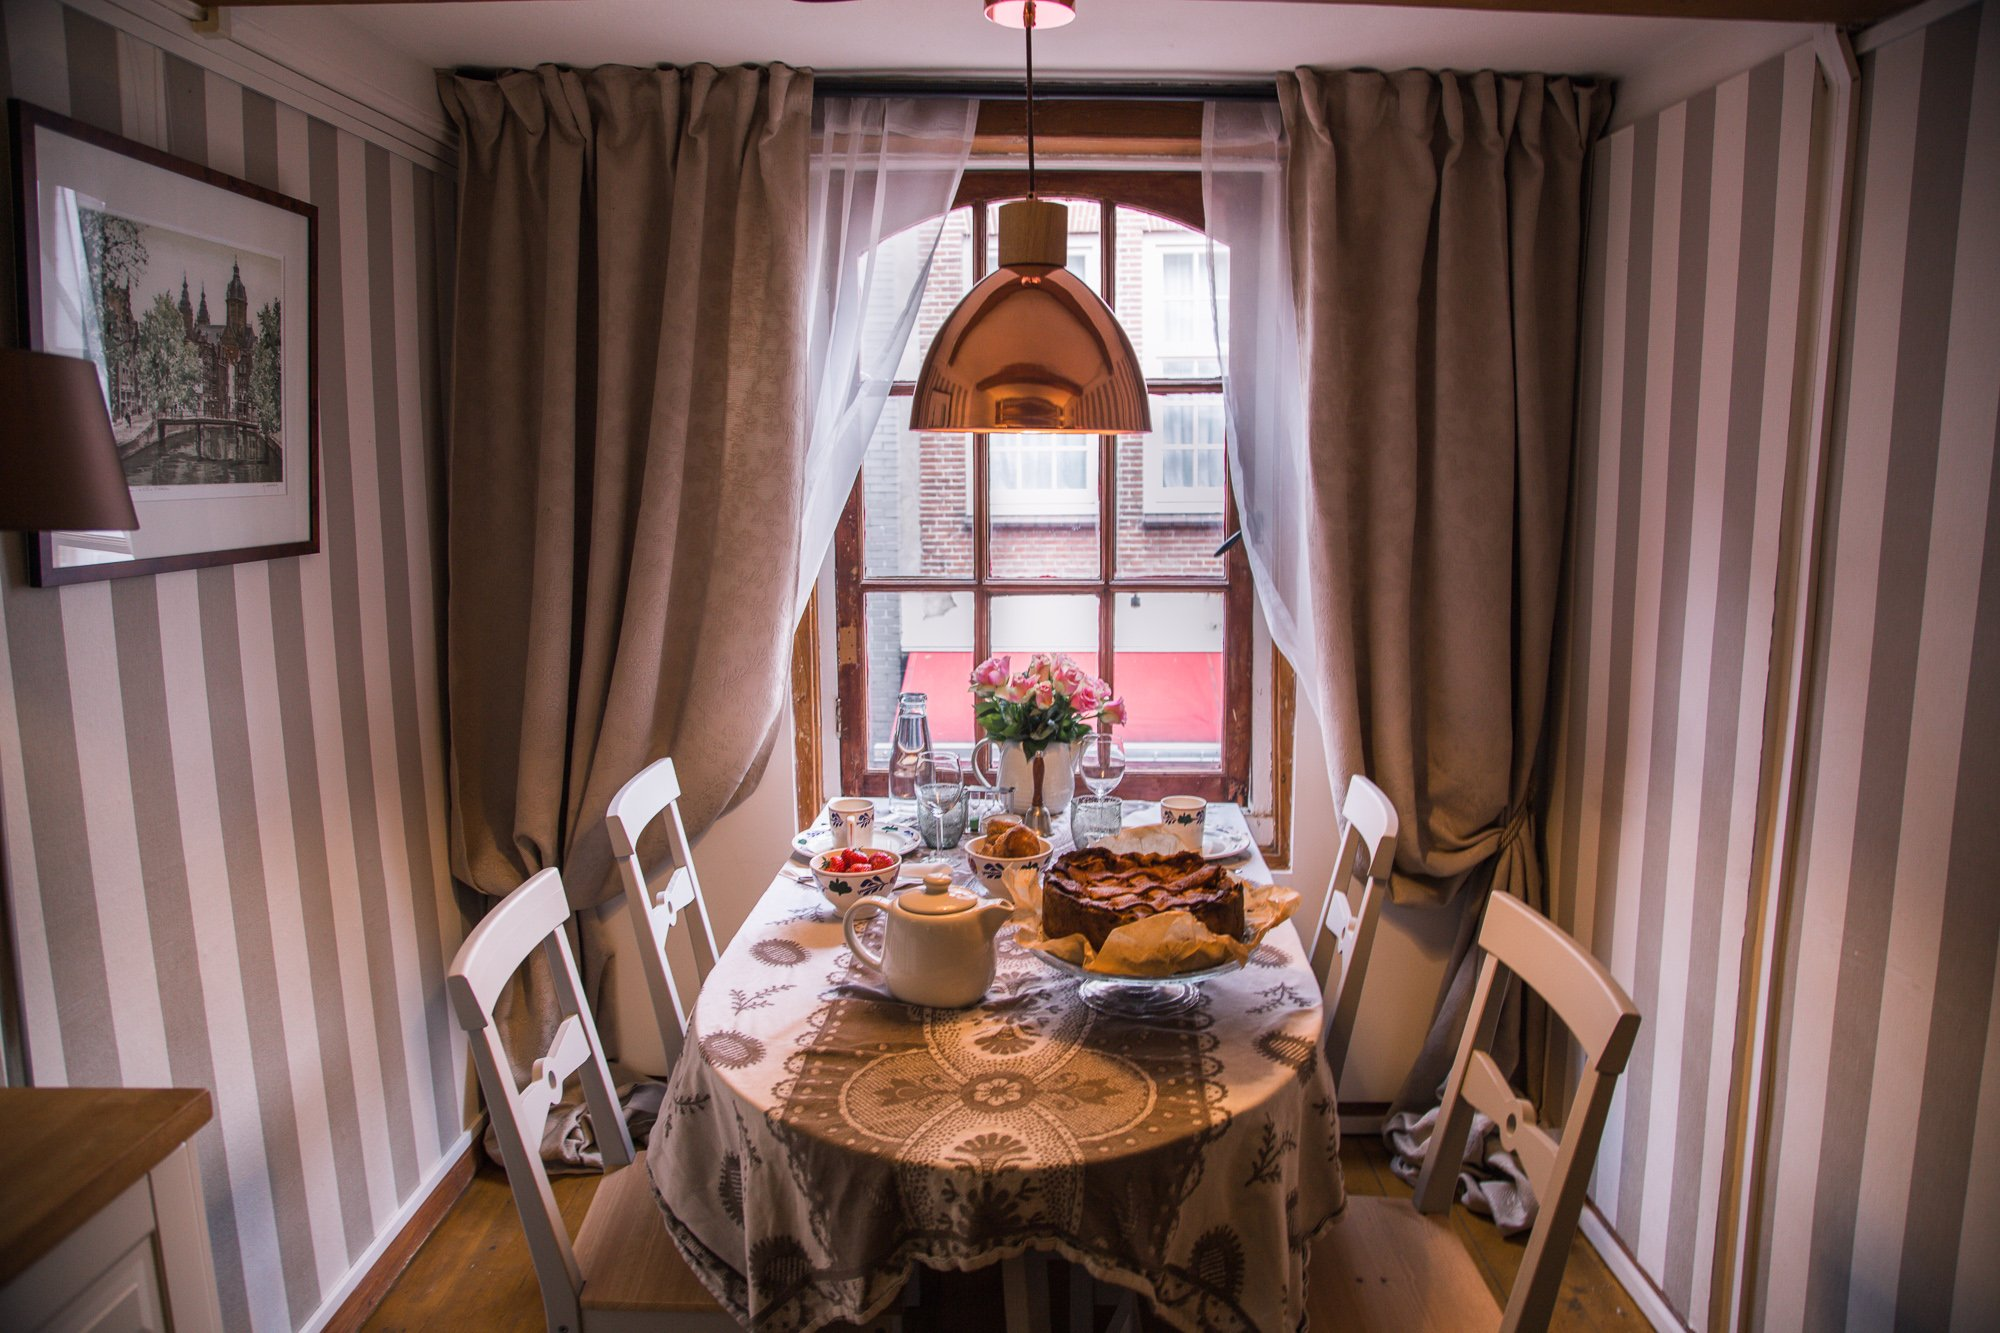 Unique things to do in Amsterdam: have high tea at the smallest house in Amsterdam